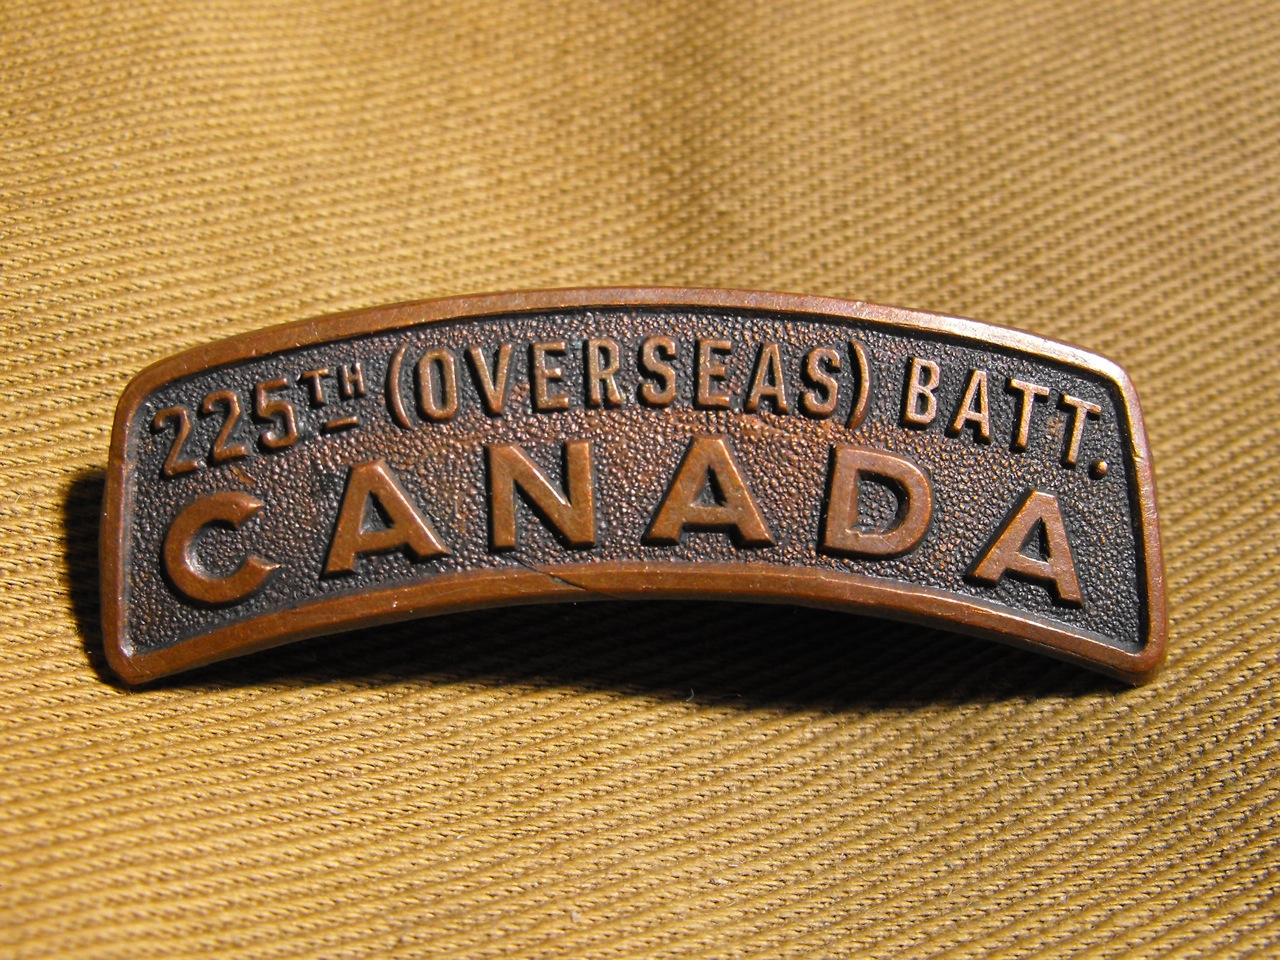 225th Bn (Kootenay) shoulder Title